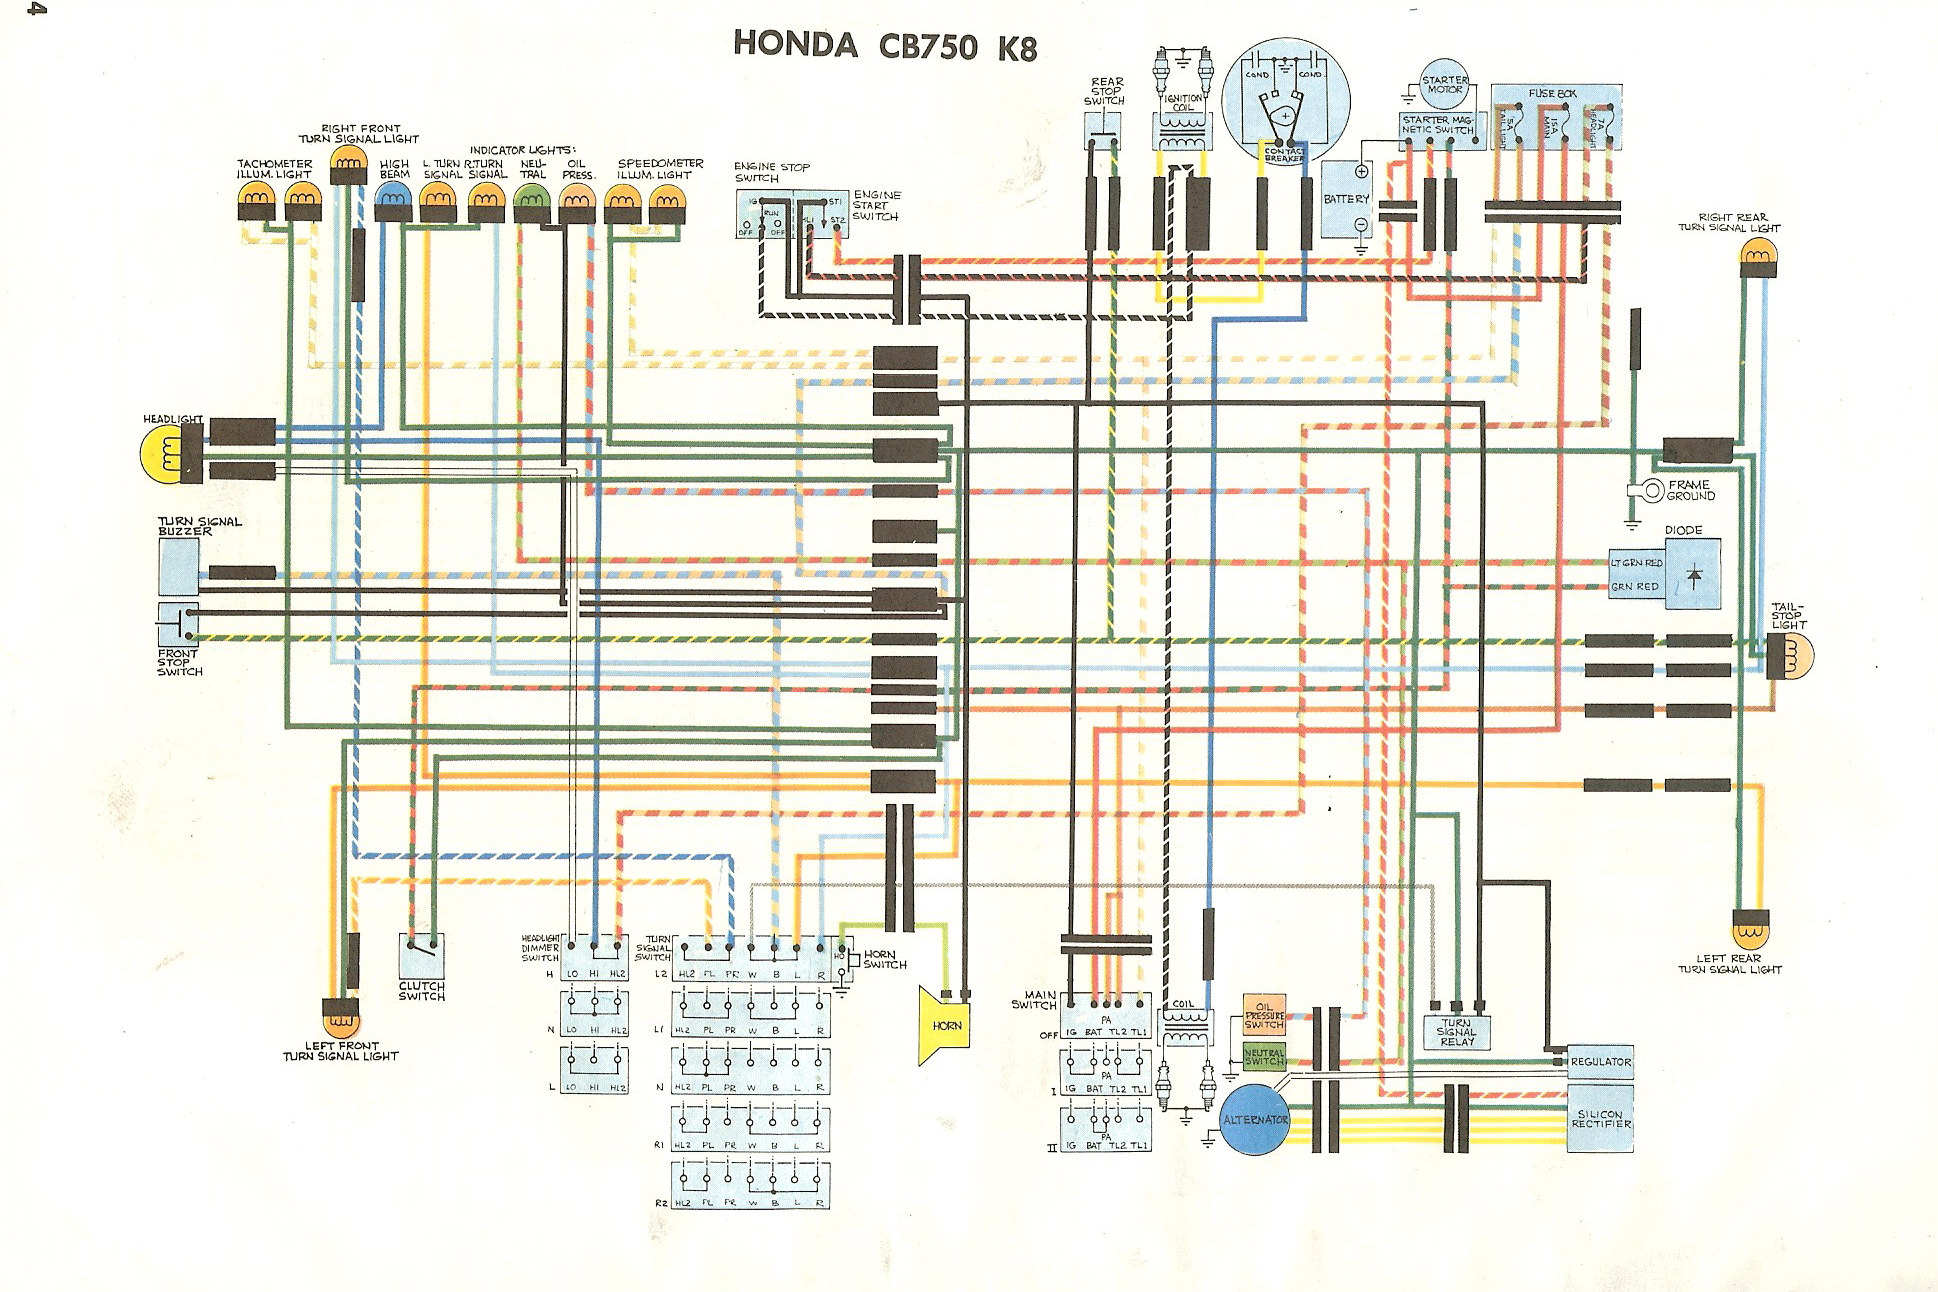 WD750K8 cb750k wiring diagram motorcycle ignition wiring diagram \u2022 wiring 1974 honda cb750 wiring harness at edmiracle.co